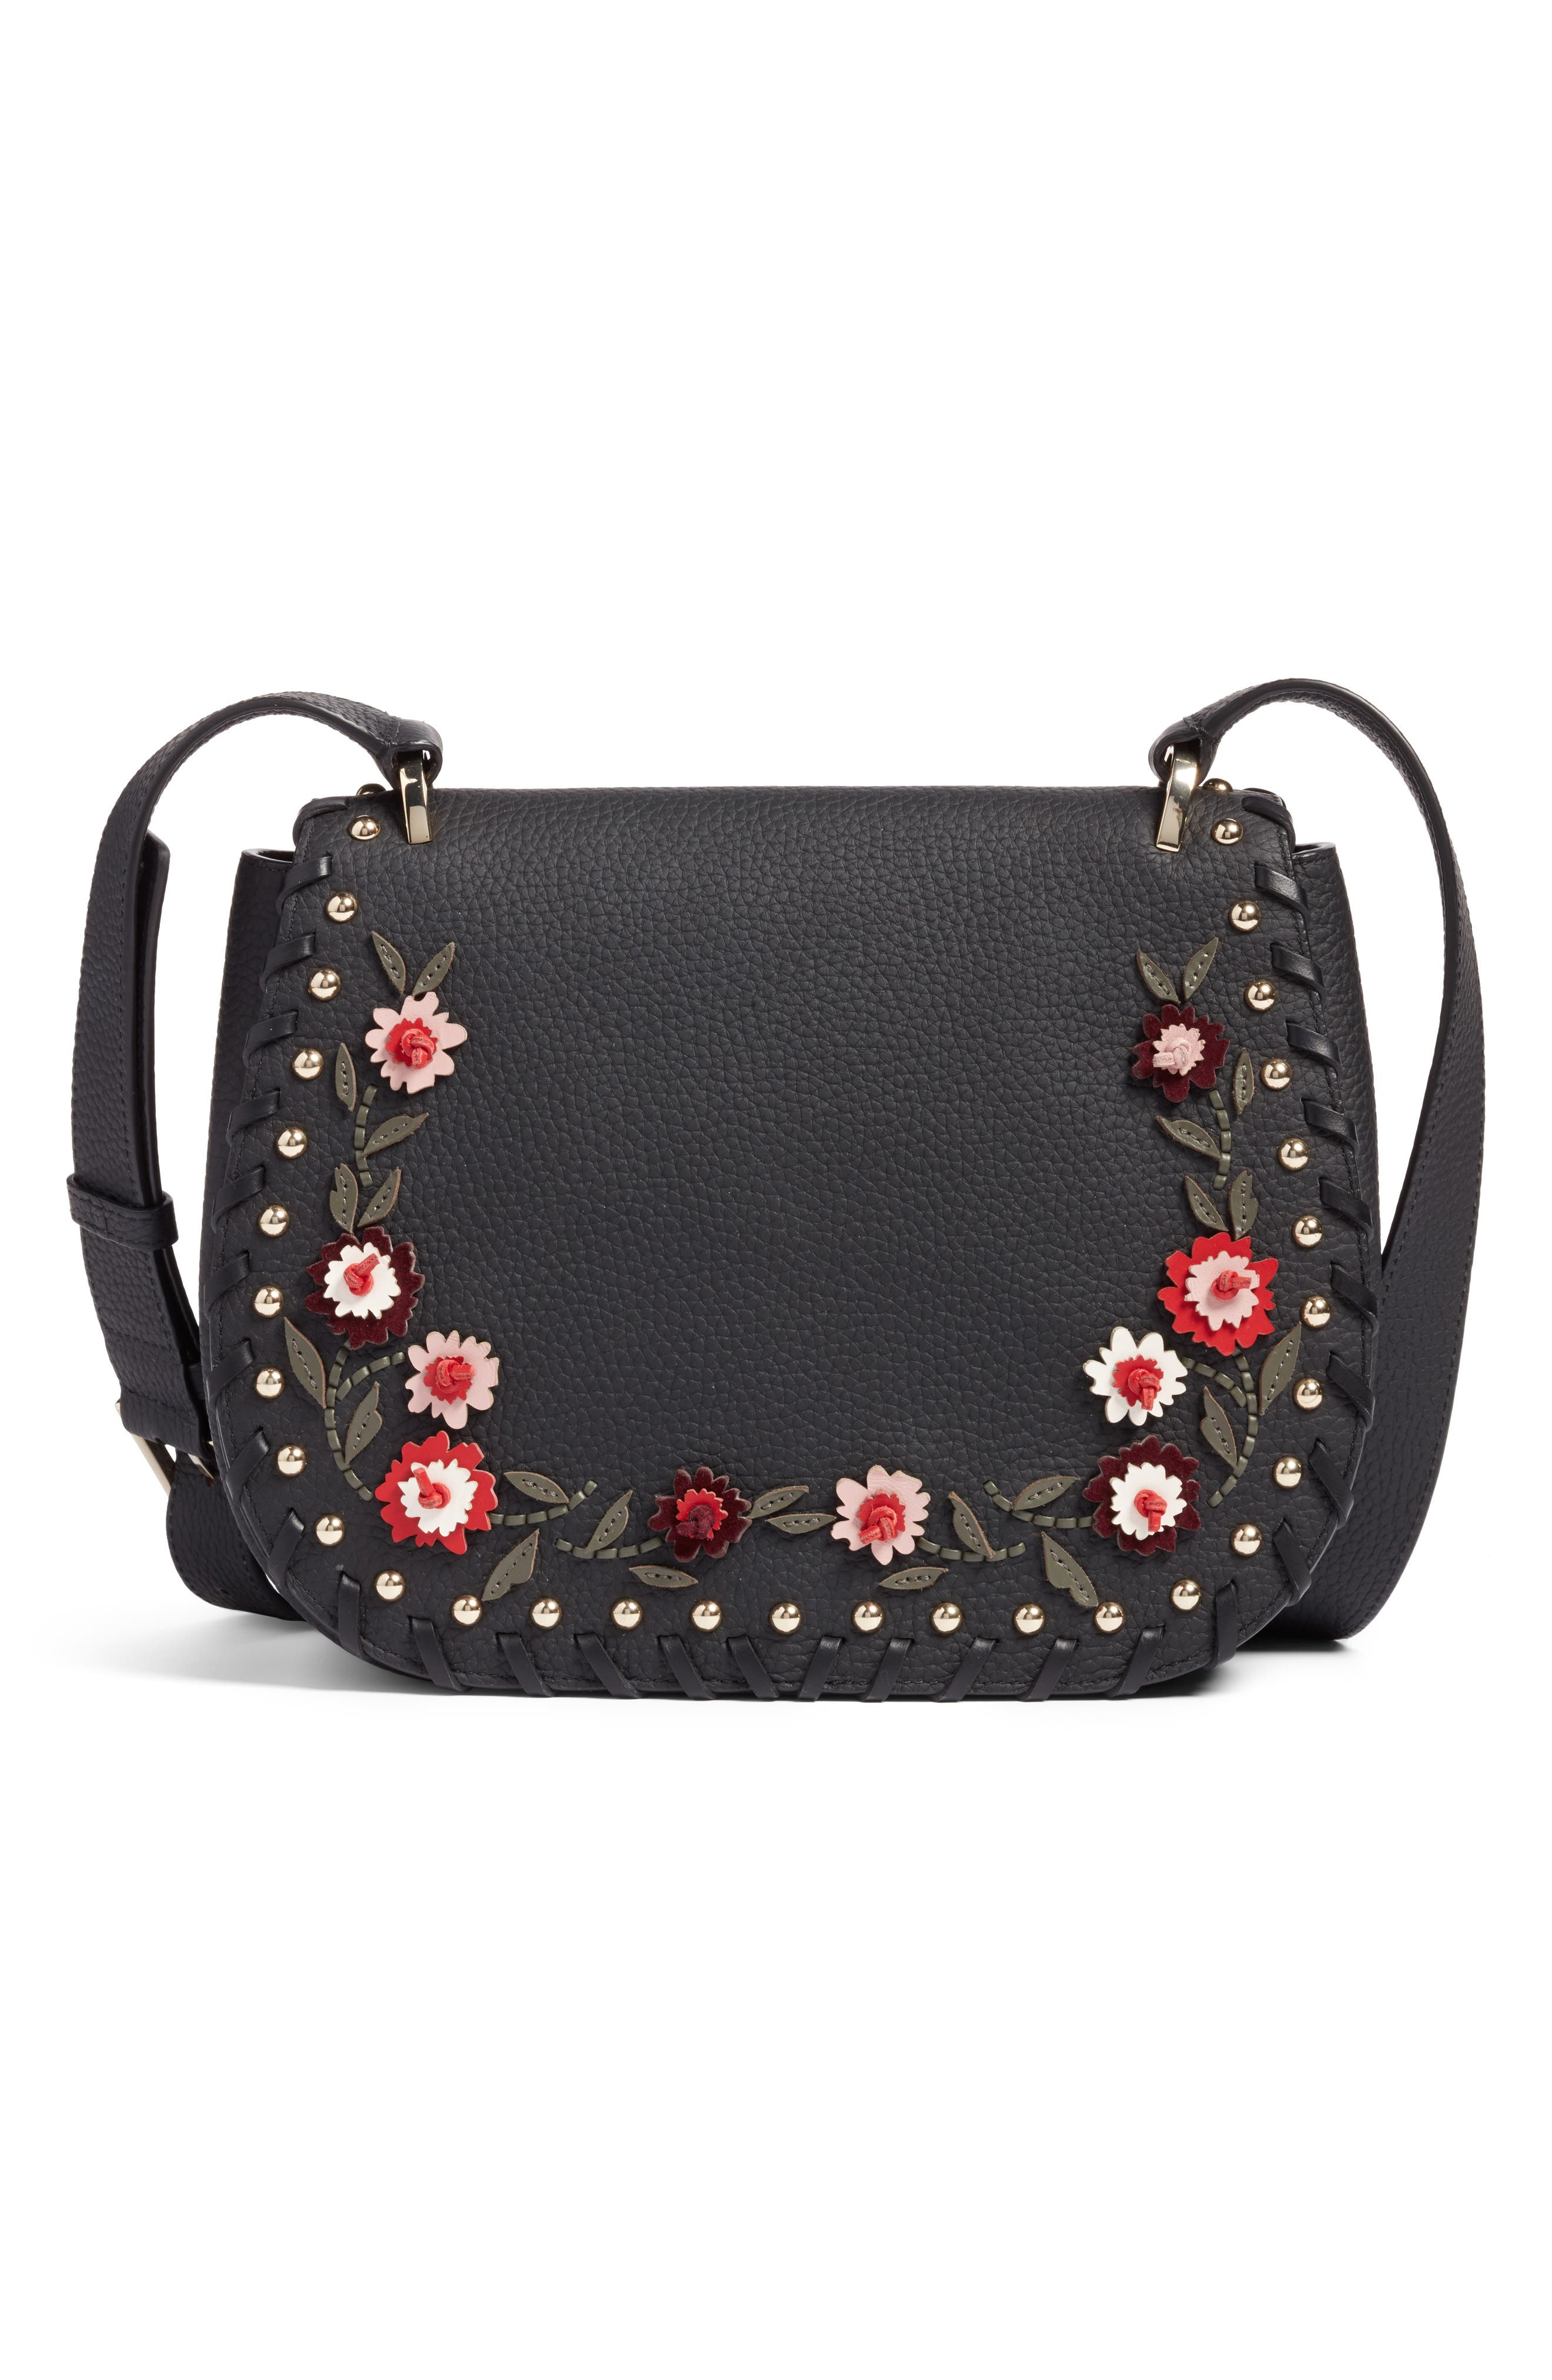 Alternate Image 1 Selected - kate spade new york madison daniels drive - tressa embellished leather crossbody bag